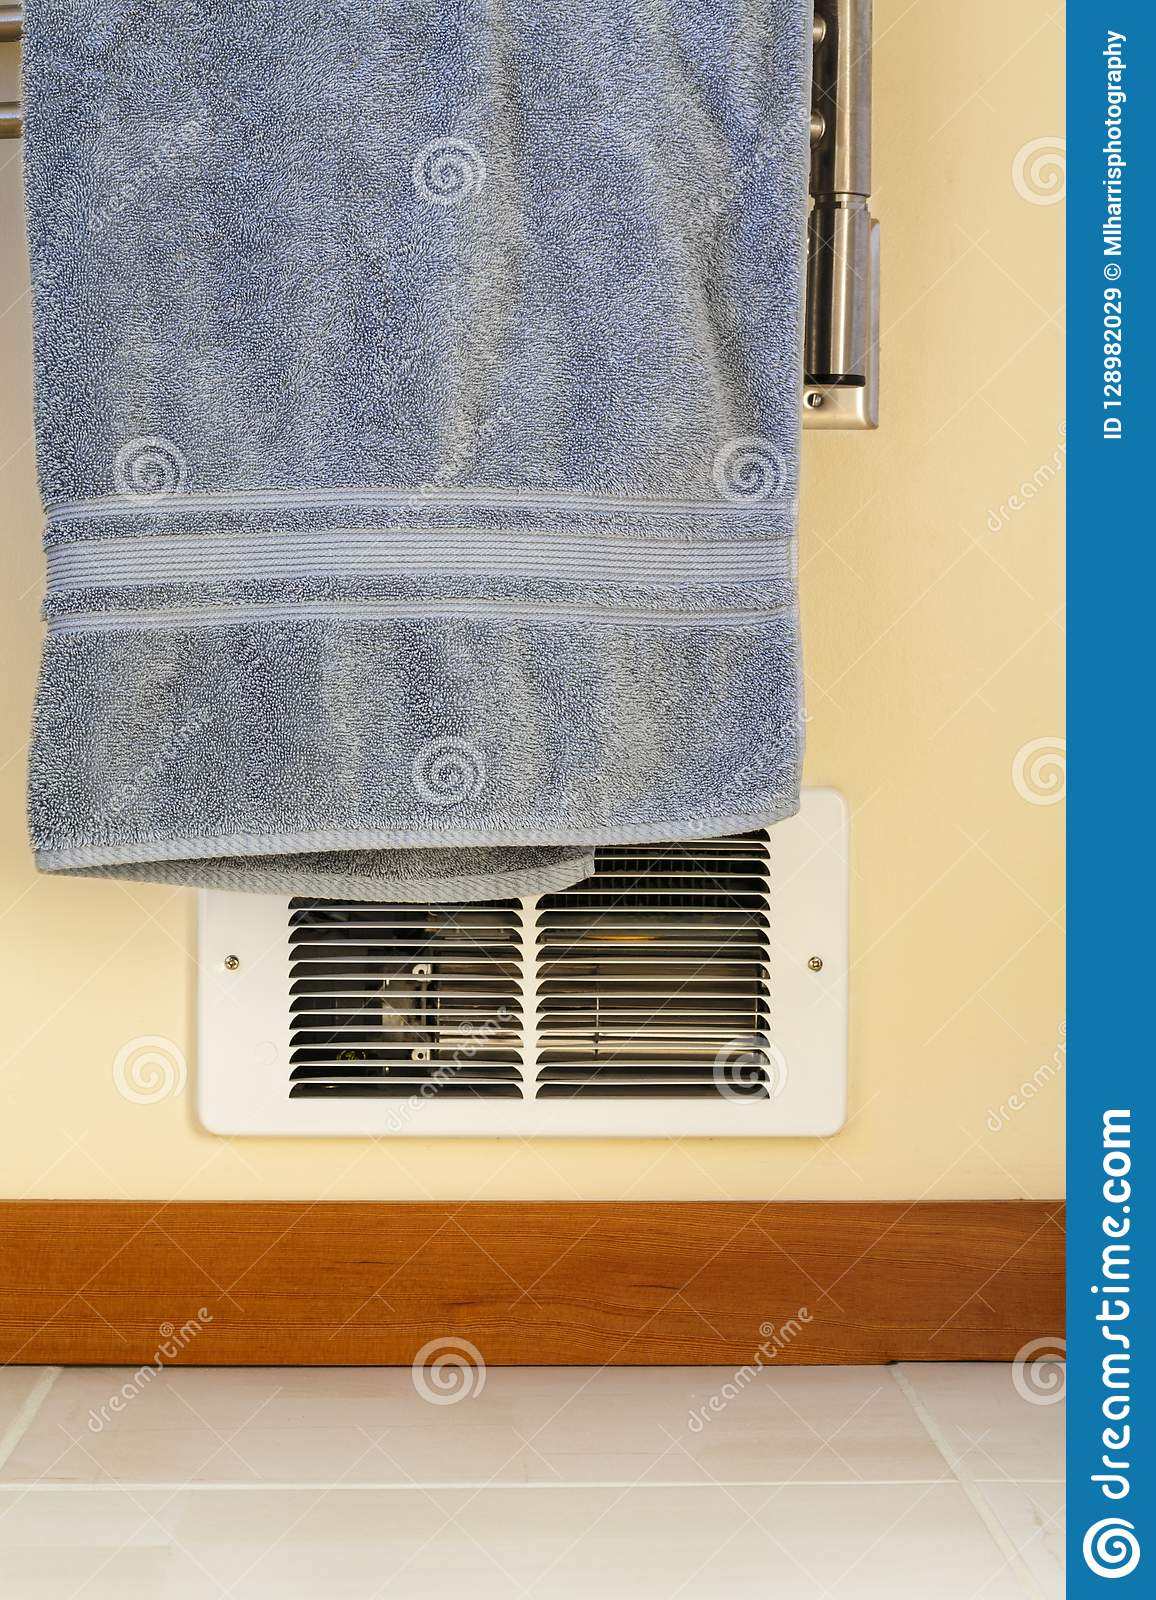 Towel Hanging In Front Of In Wall Electric Baseboard Heater Heating Unit Dangerous House Home Fire Hazards Stock Image Image Of Hanging Unit 128982029